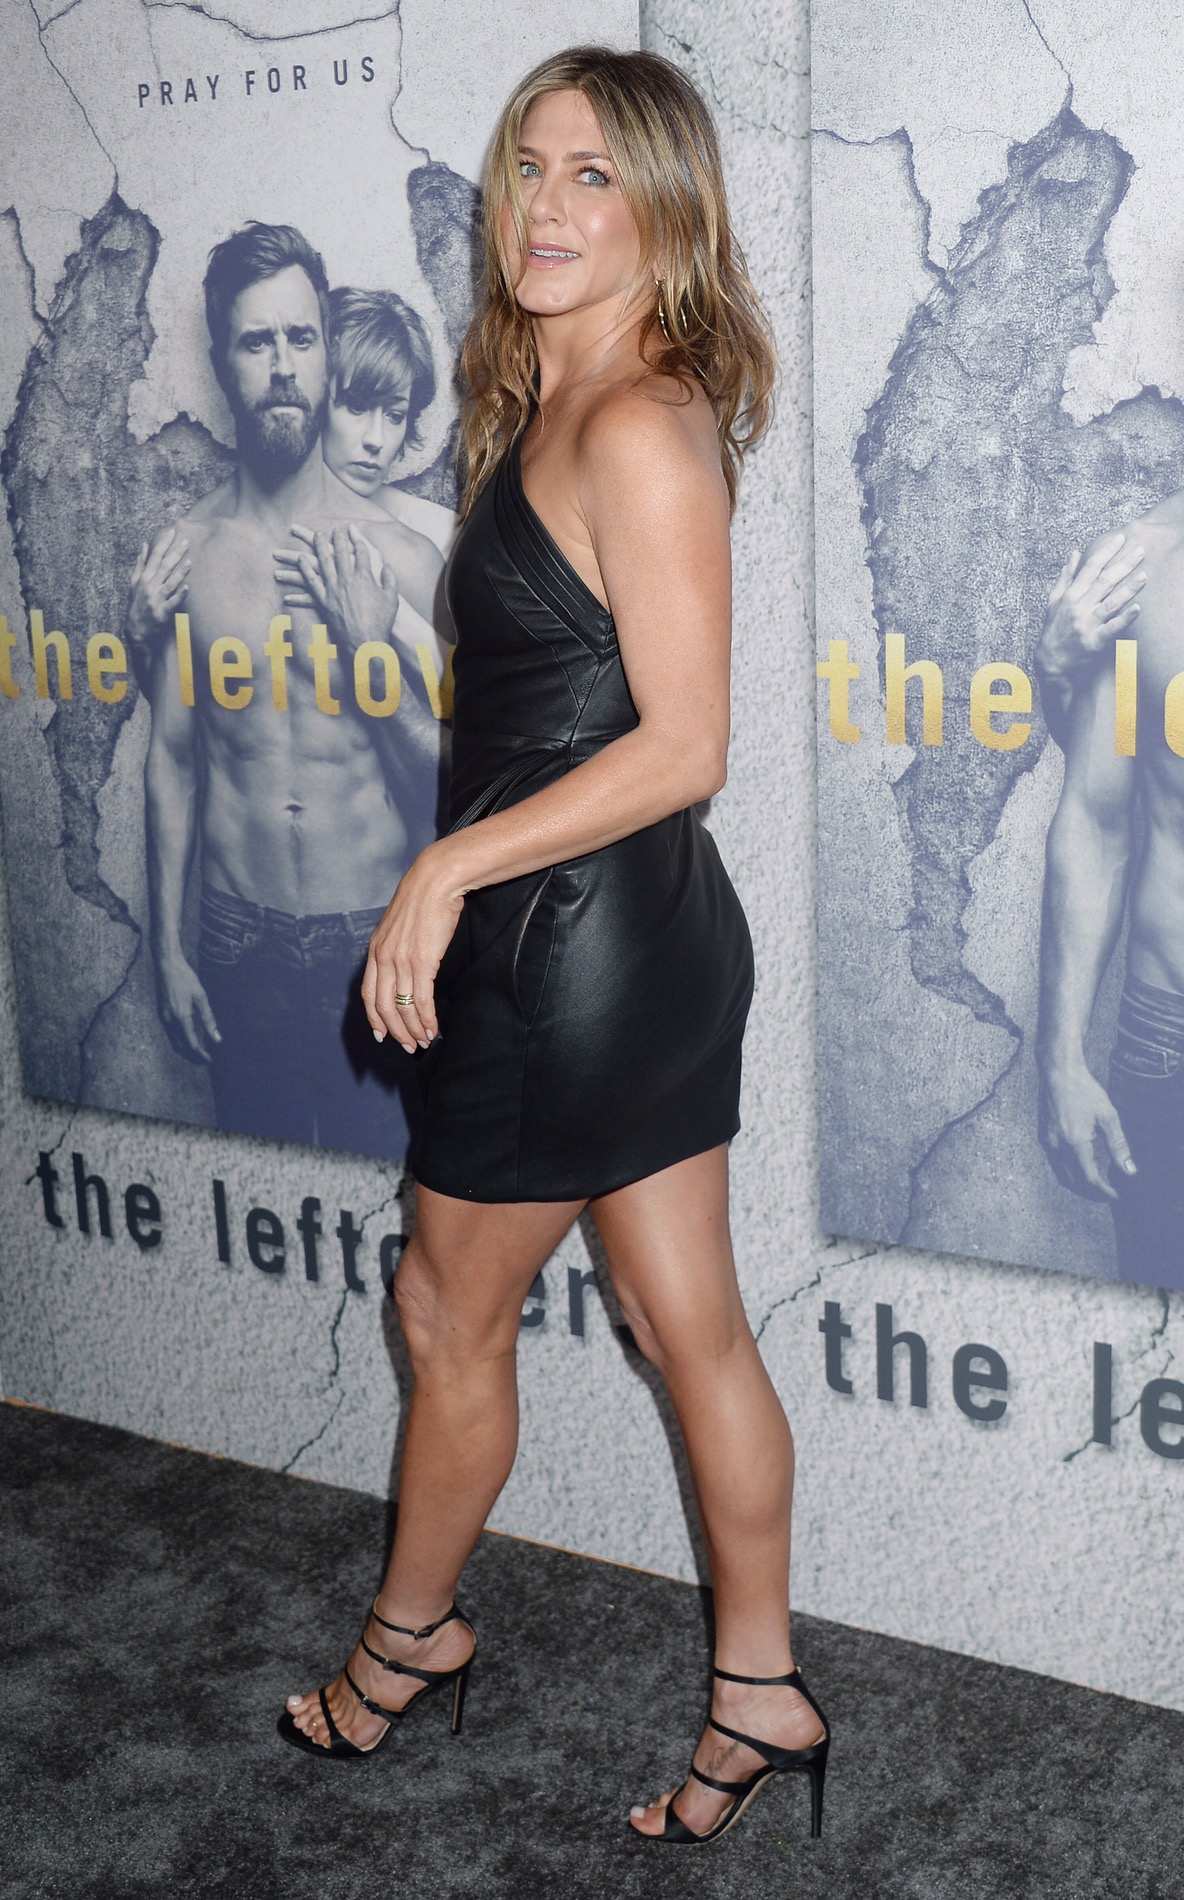 Jennifer aniston hot legs You are